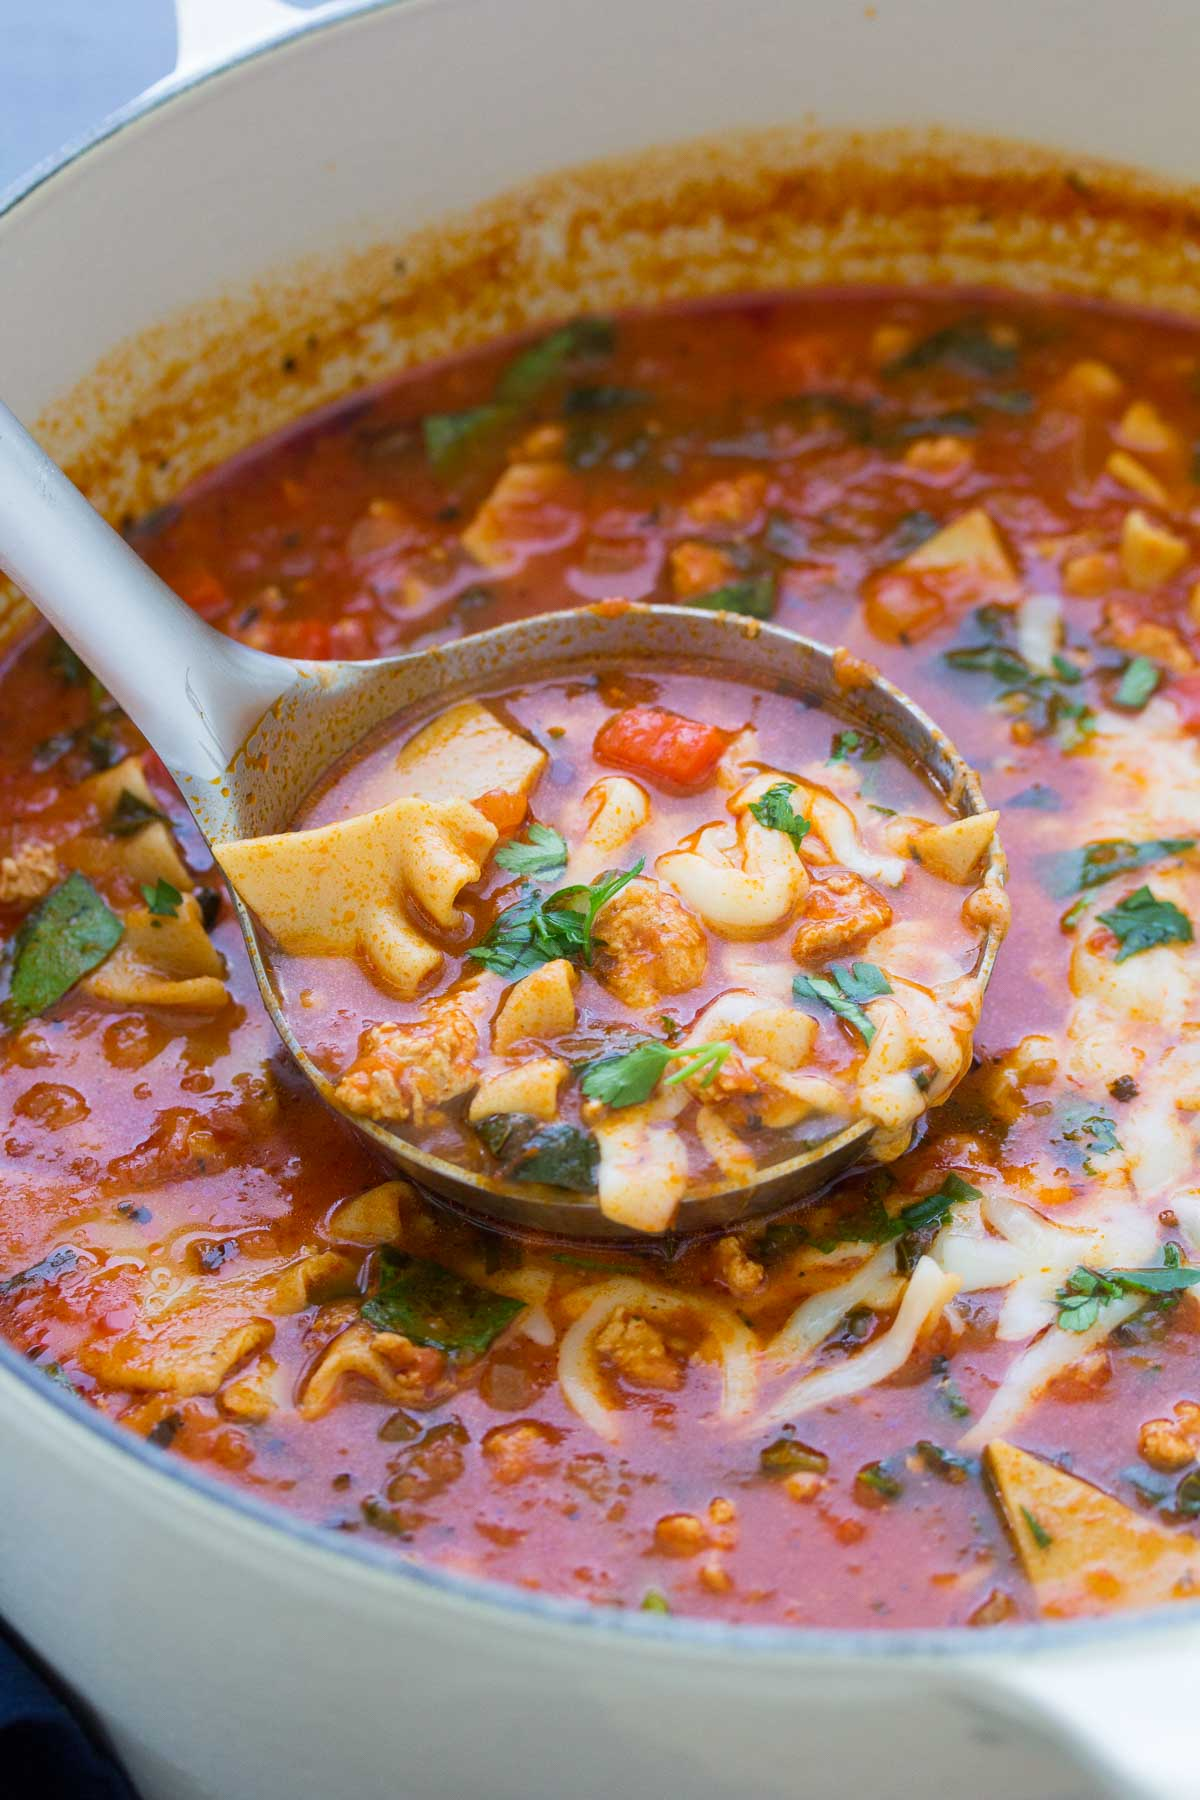 This healthier one pot lasagna soup is made with ground turkey and whole wheat pasta noodles. This soup is full of healthy vegetables. It's a quick and easy family friendly dinner recipe!